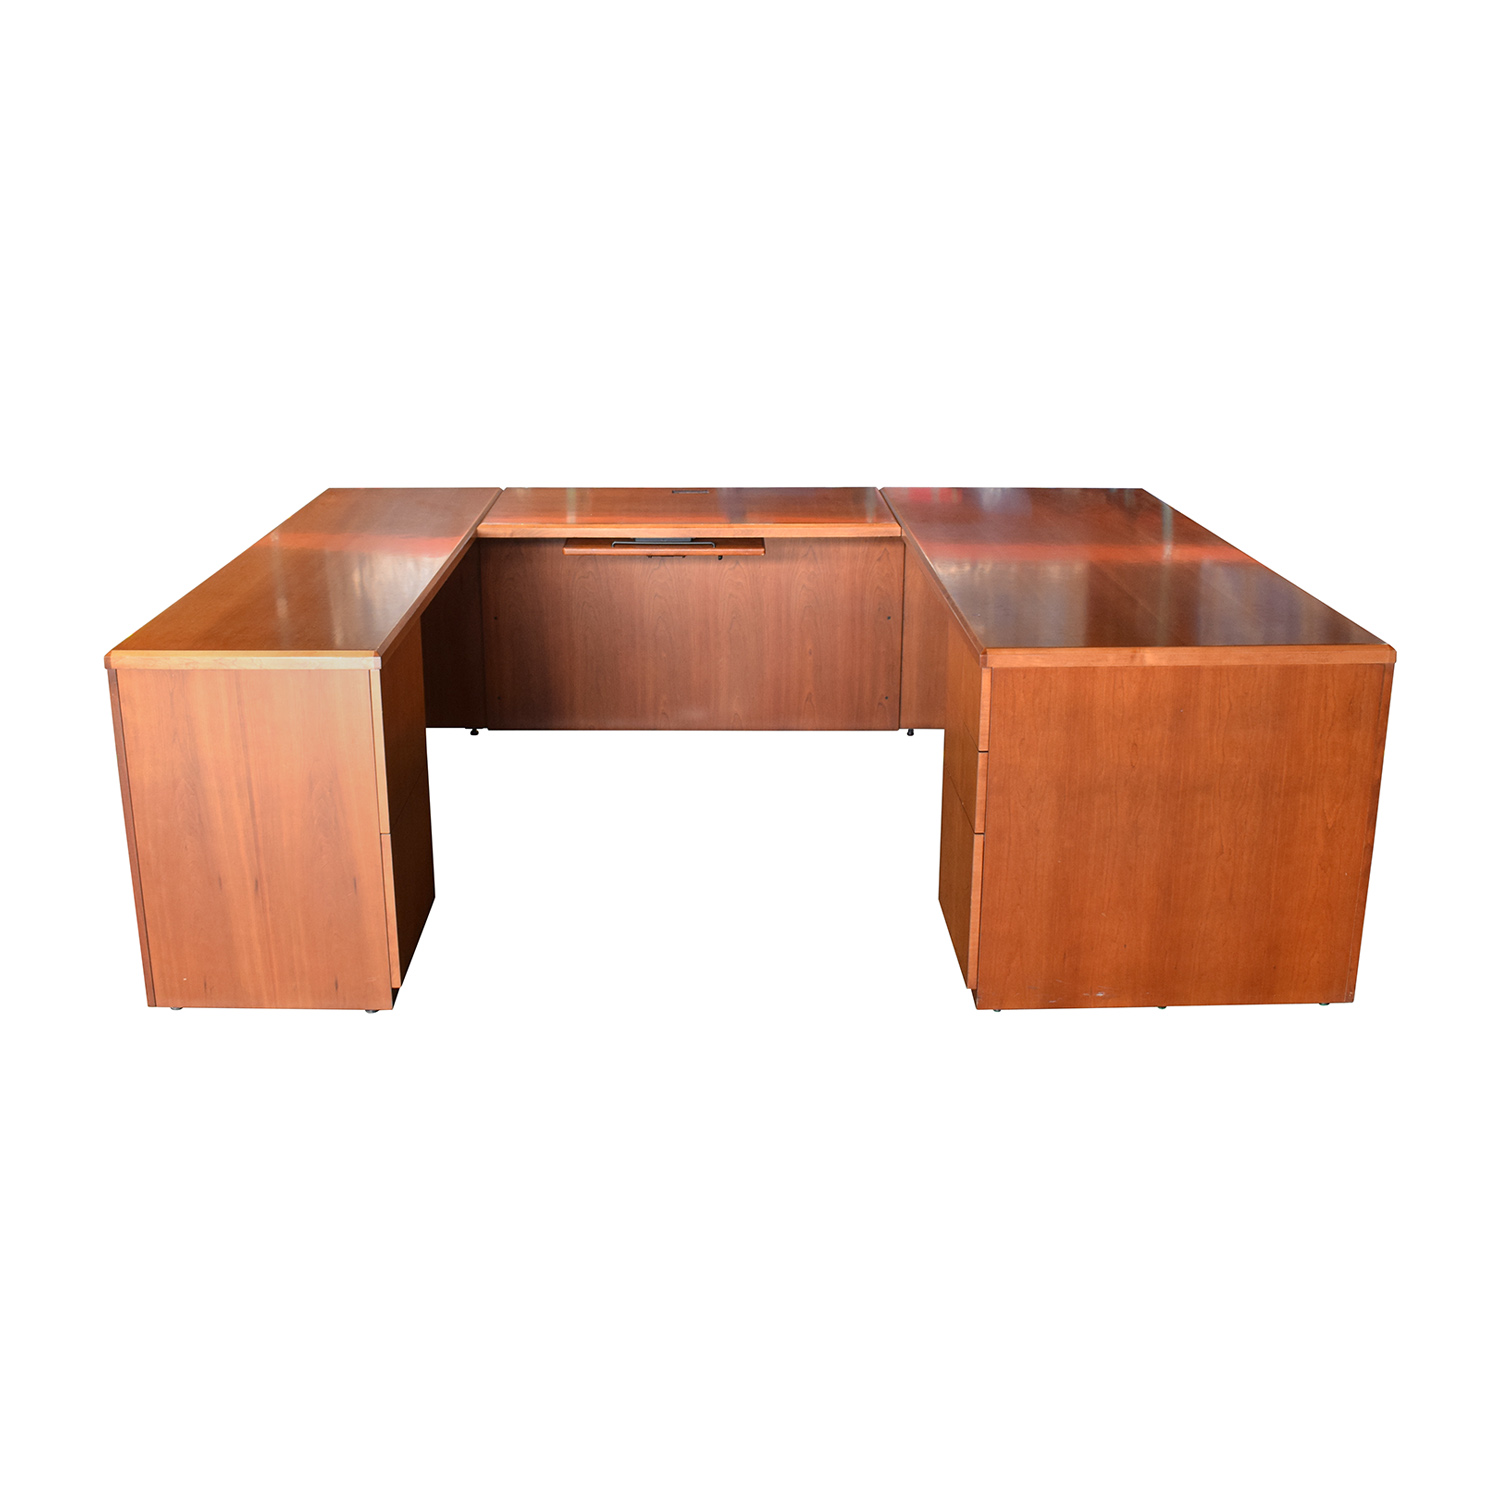 Gunlocke Company Gunlocke Company U-Shaped Desk nj